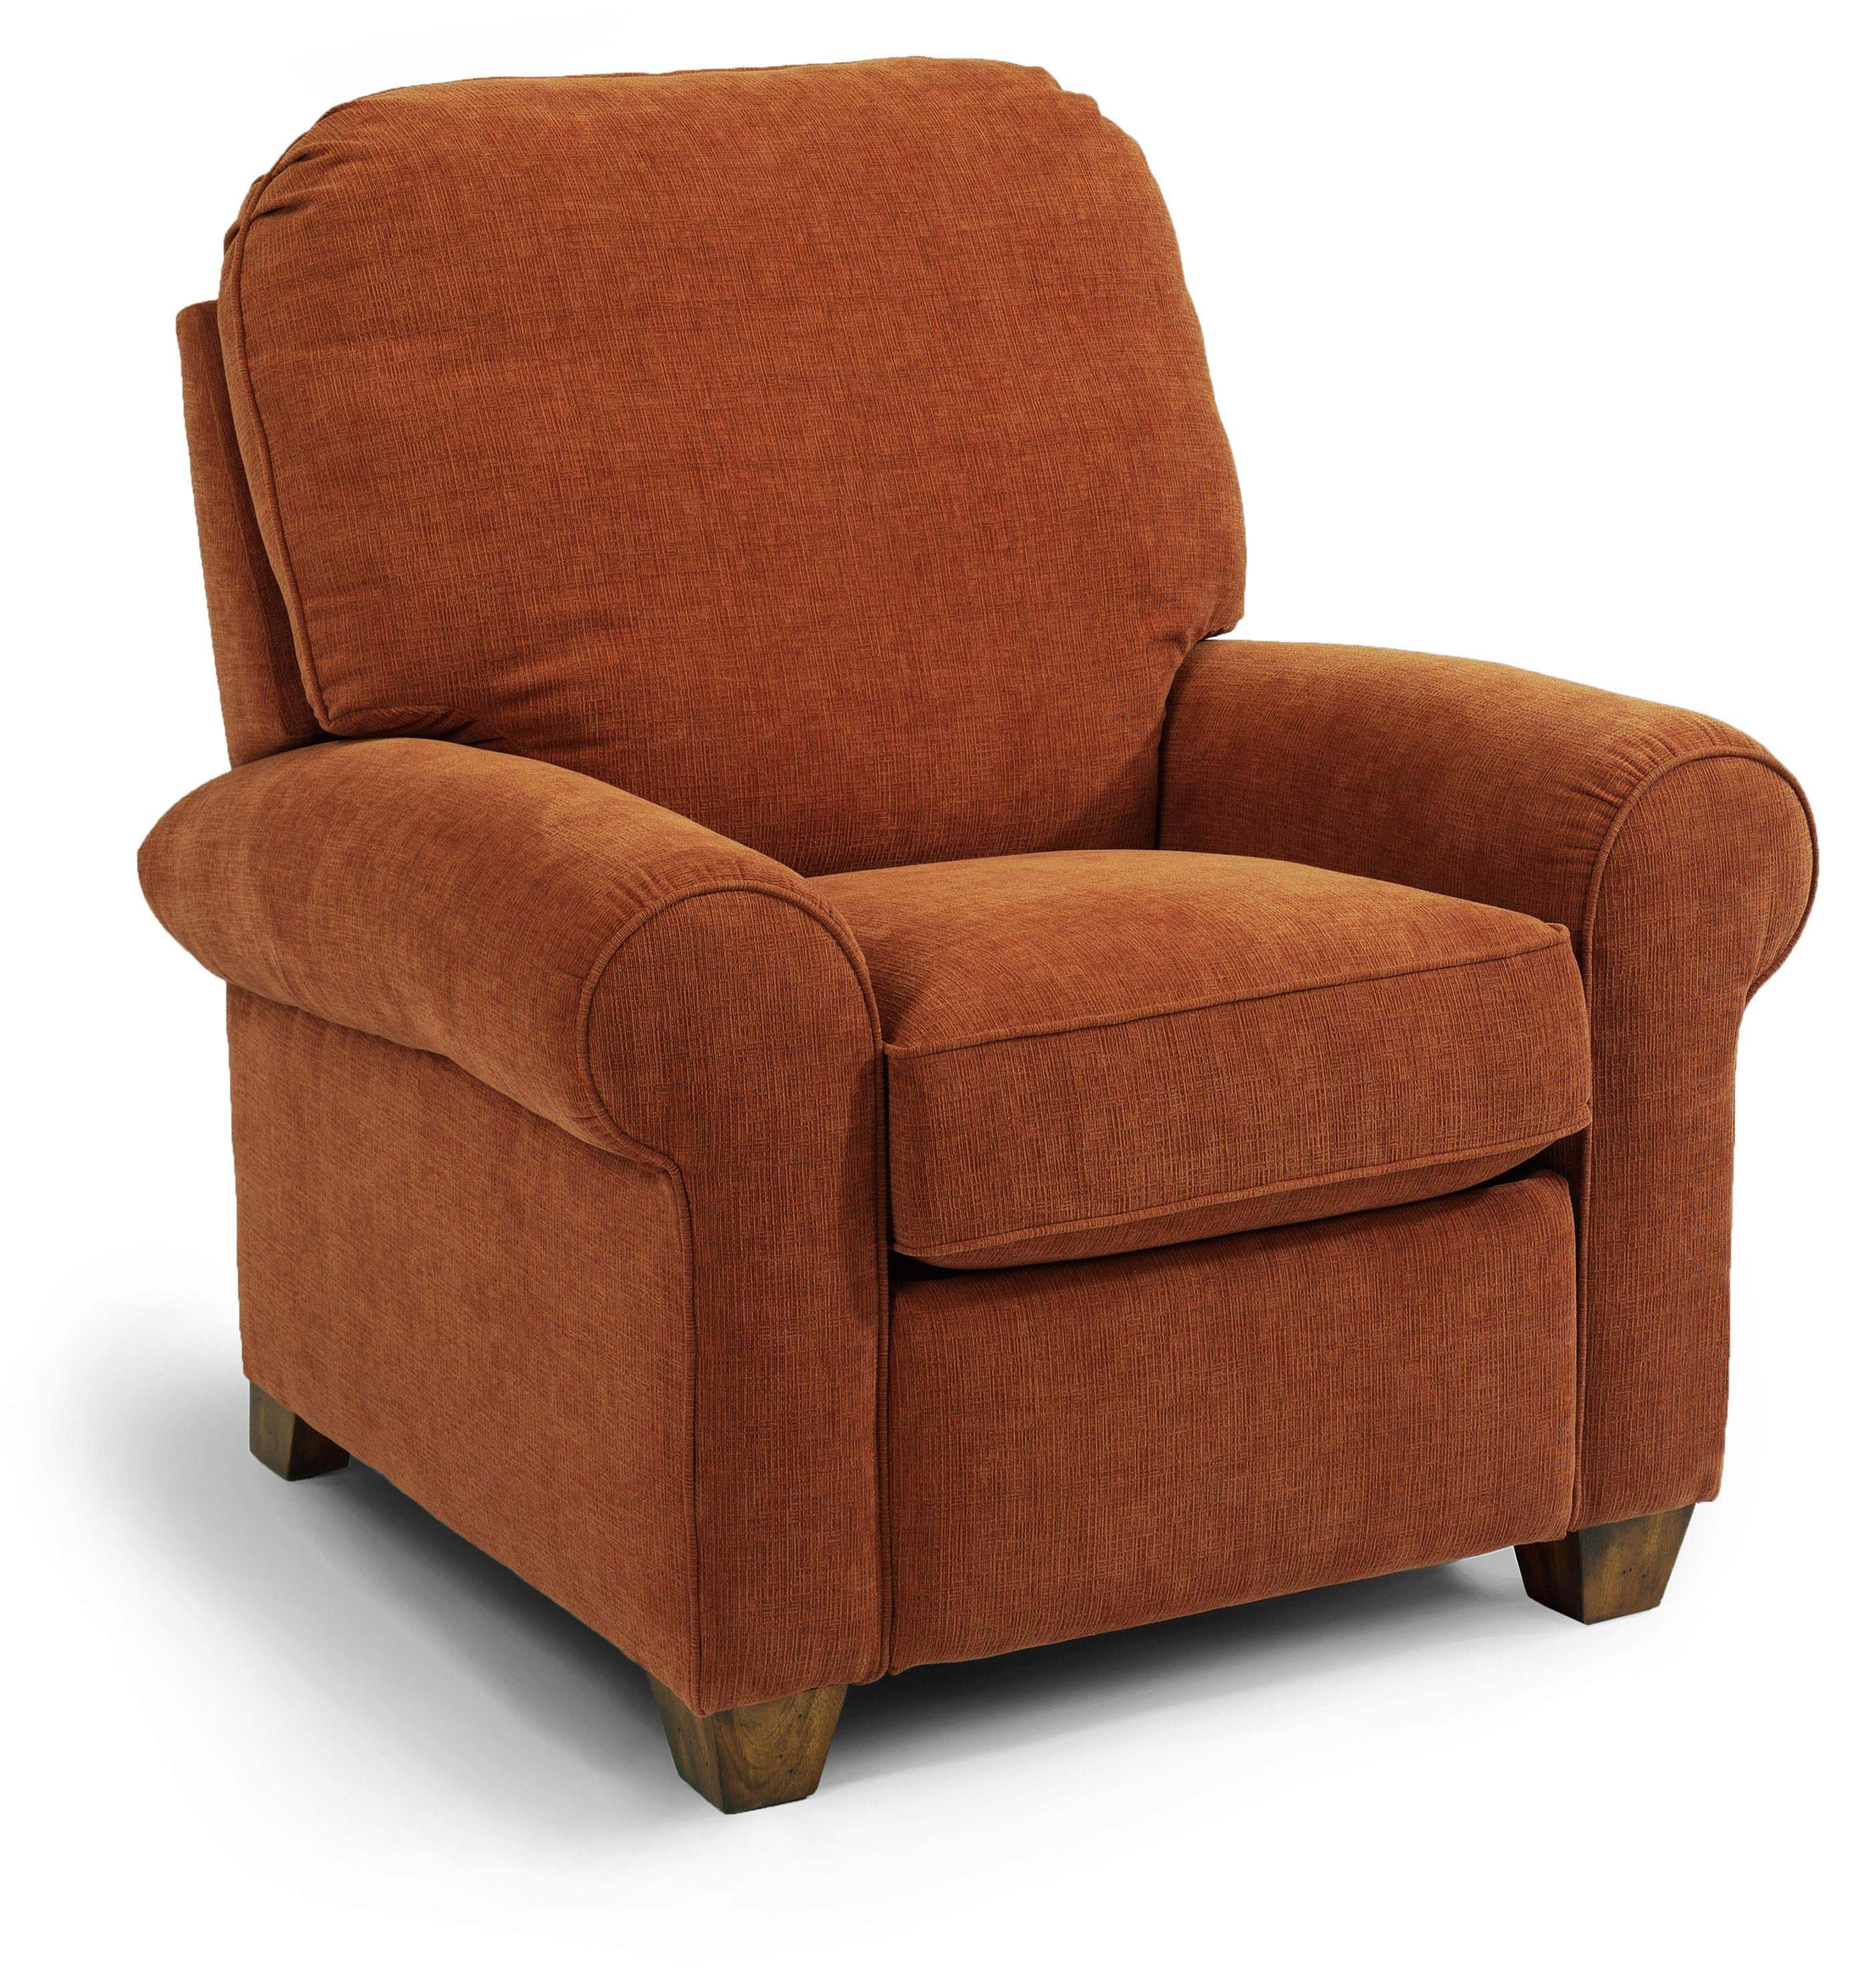 glider recliner huffman koos swivel furniture ava collections recliners